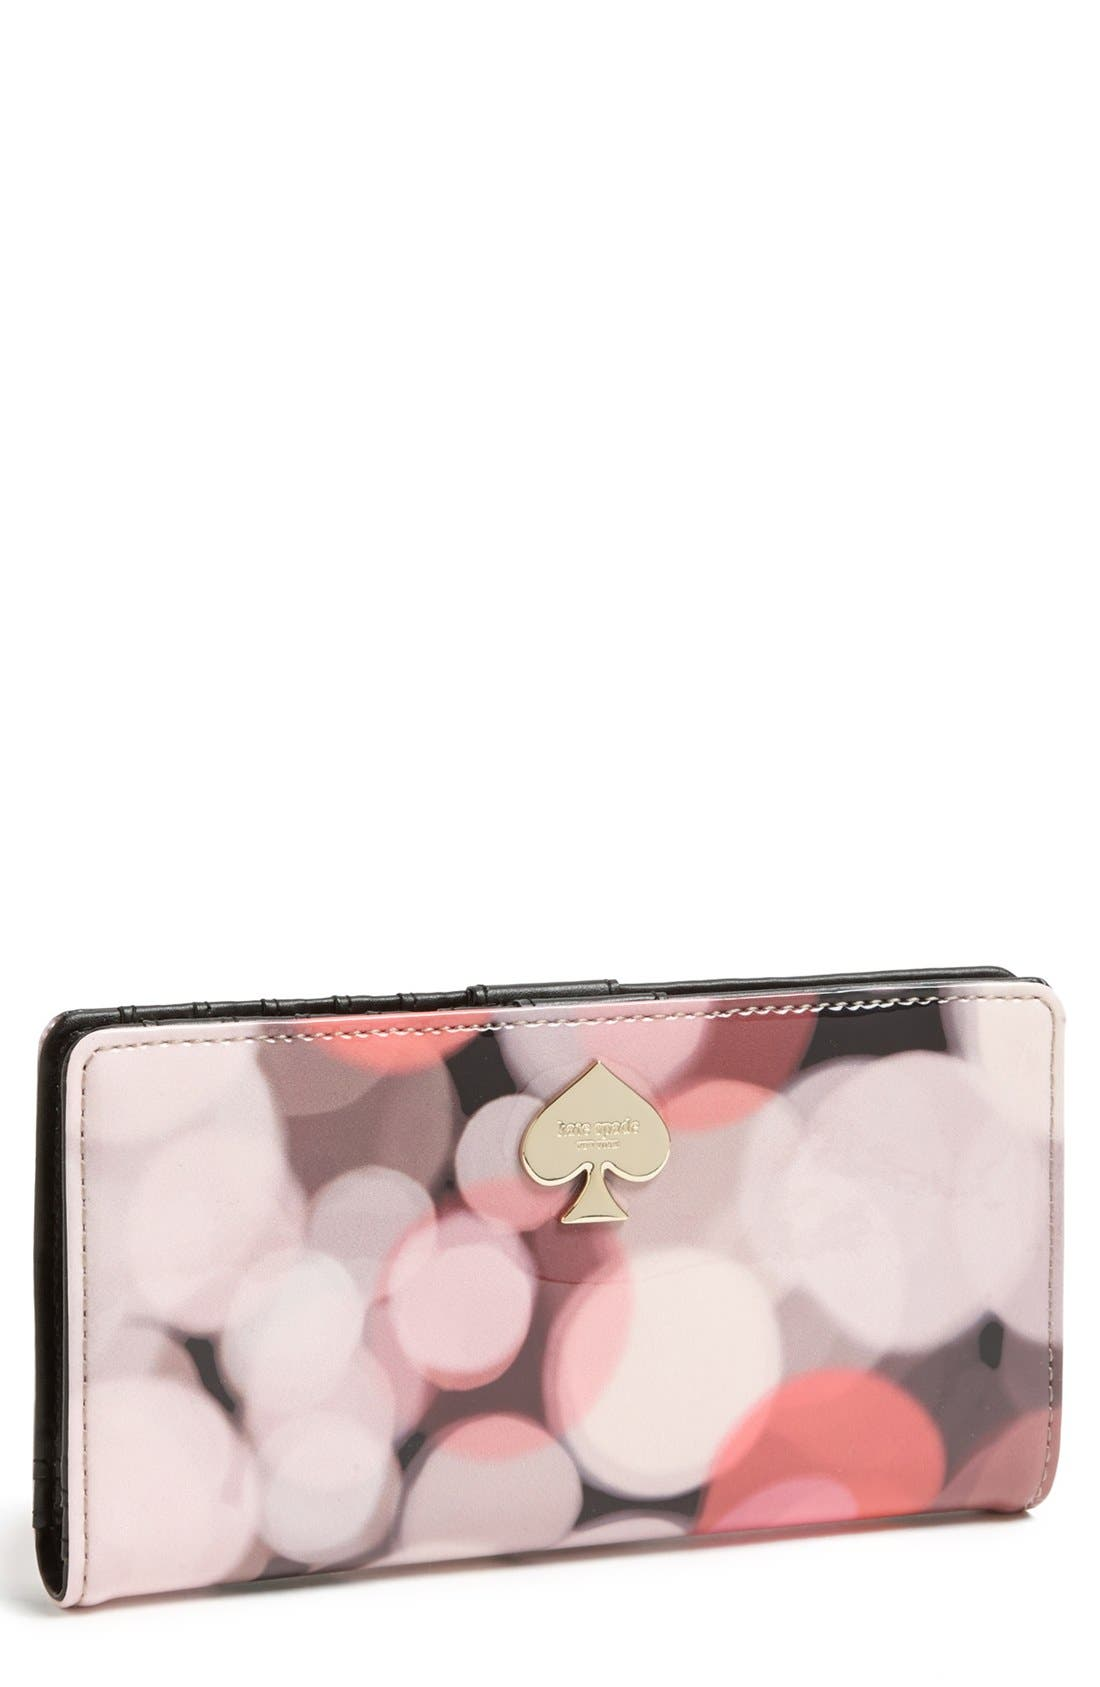 Main Image - kate spade new york 'stacy' continental wallet